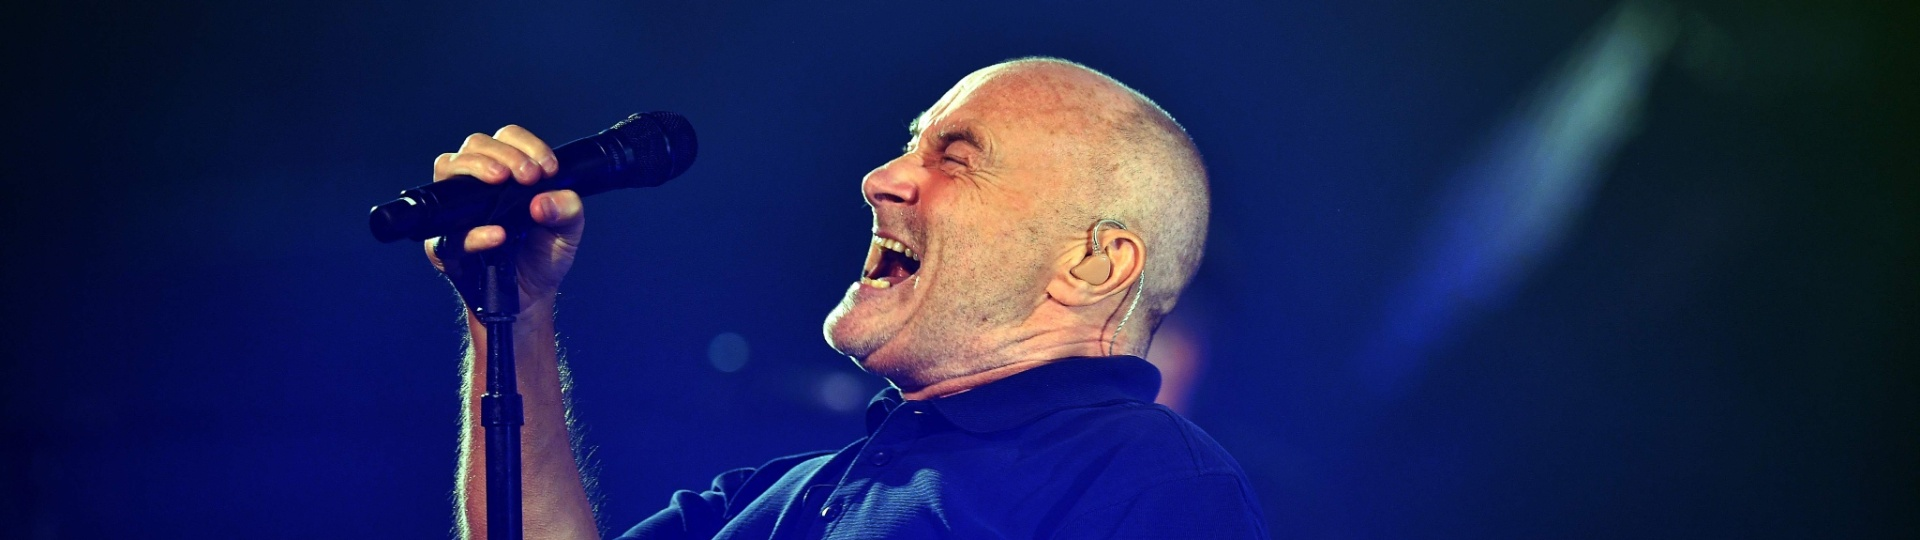 29.ago.2016 - Phil Collins se apresenta durante a abertura do US Open 2016